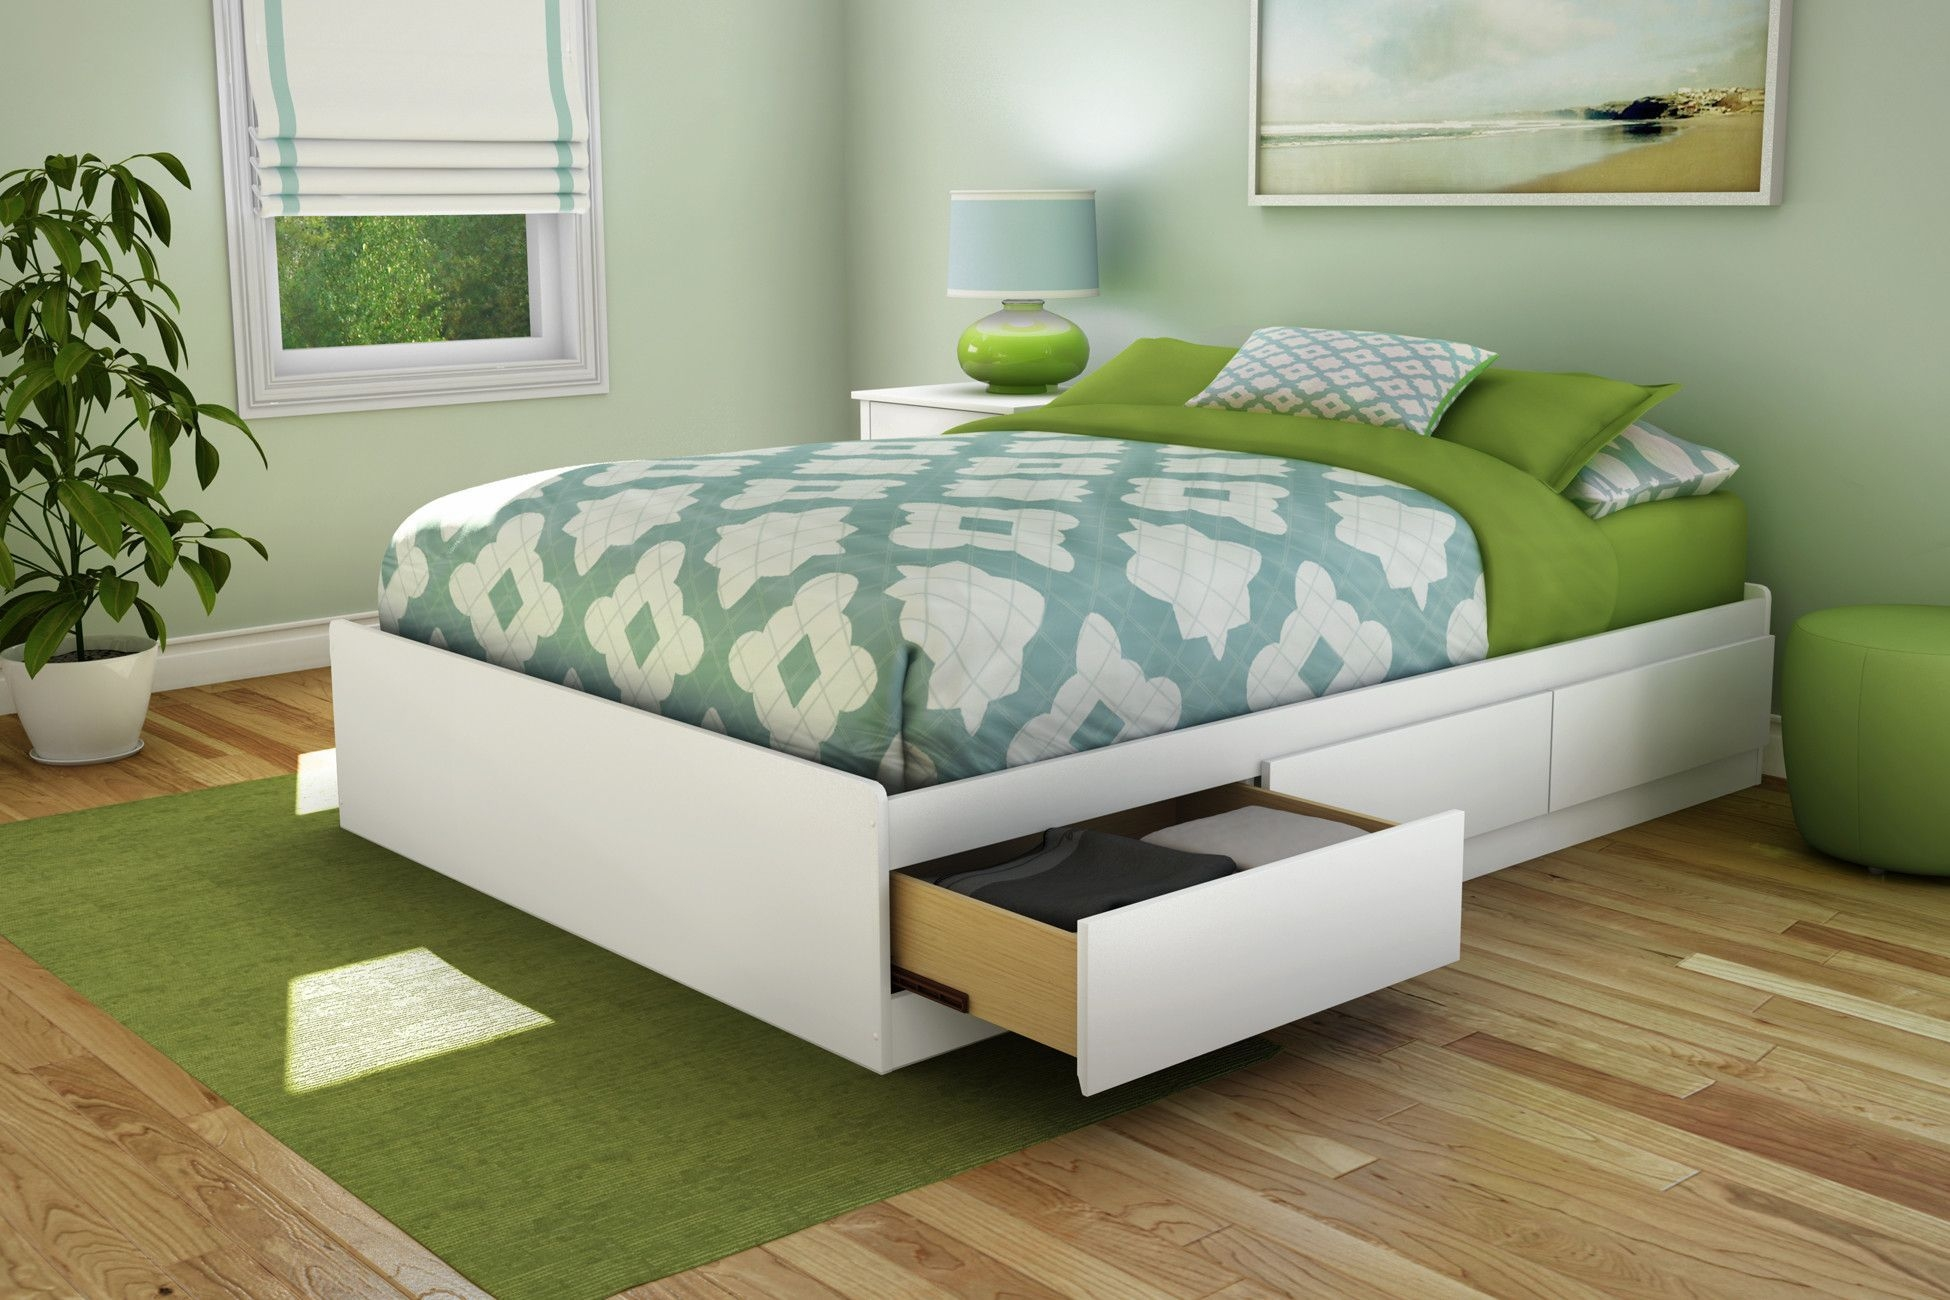 Full Size Bed Frame With Drawers Underneath